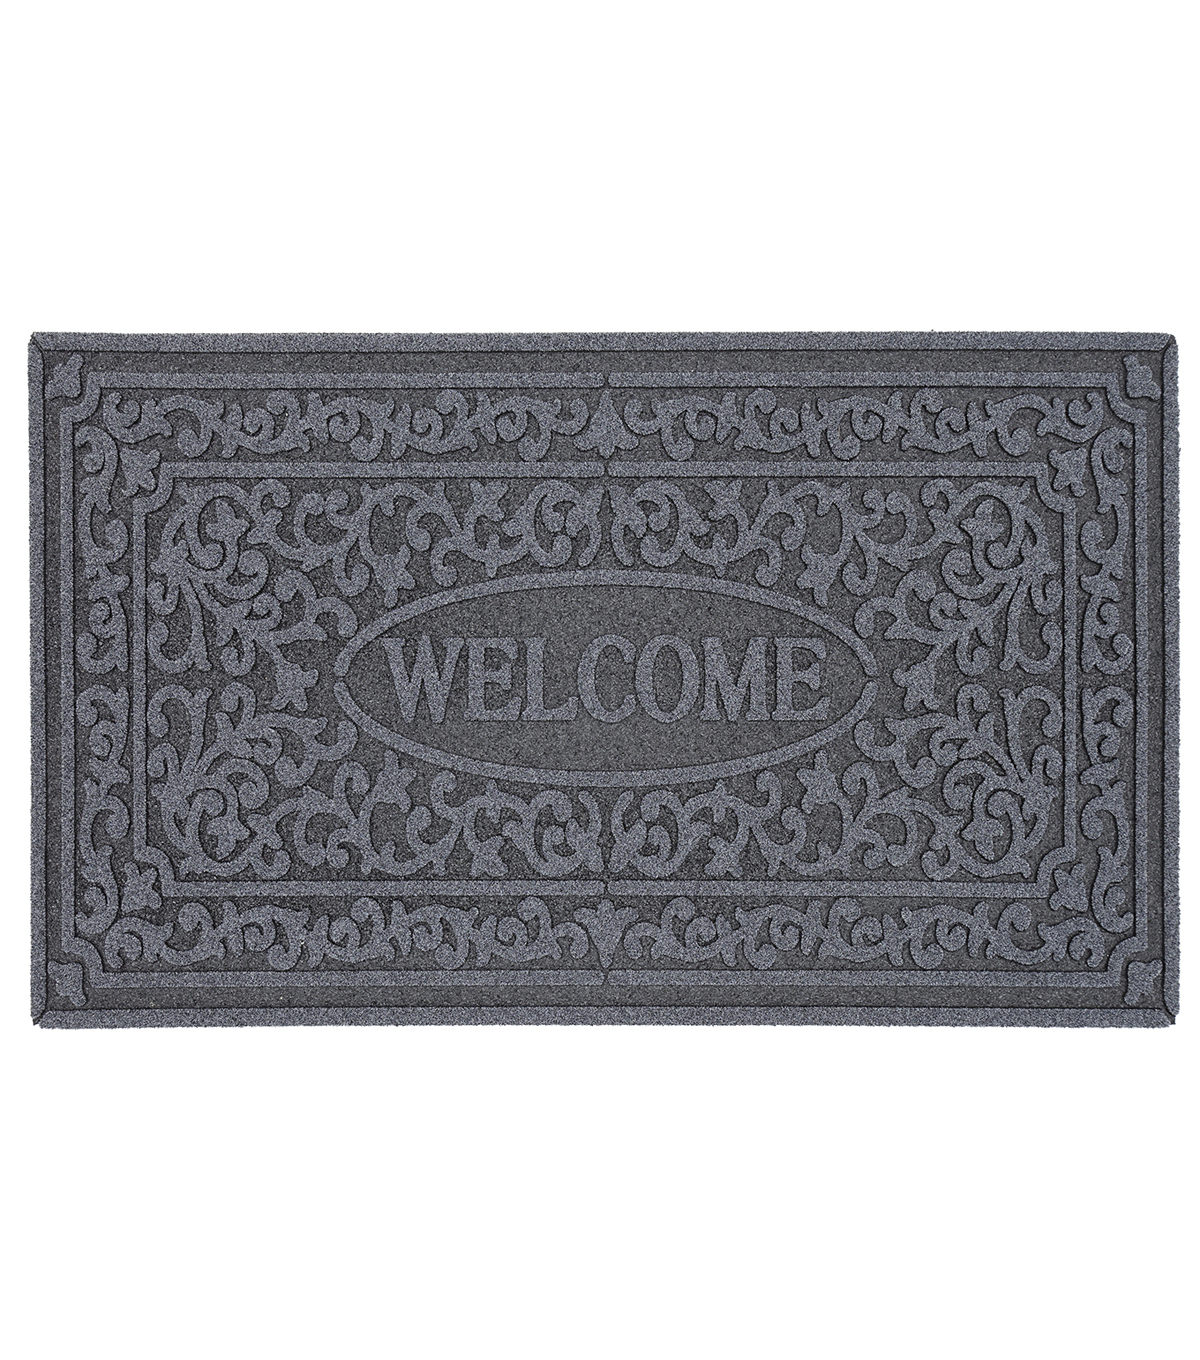 Mohawk Home 18''x30'' Doormat-Flocked St. Croix